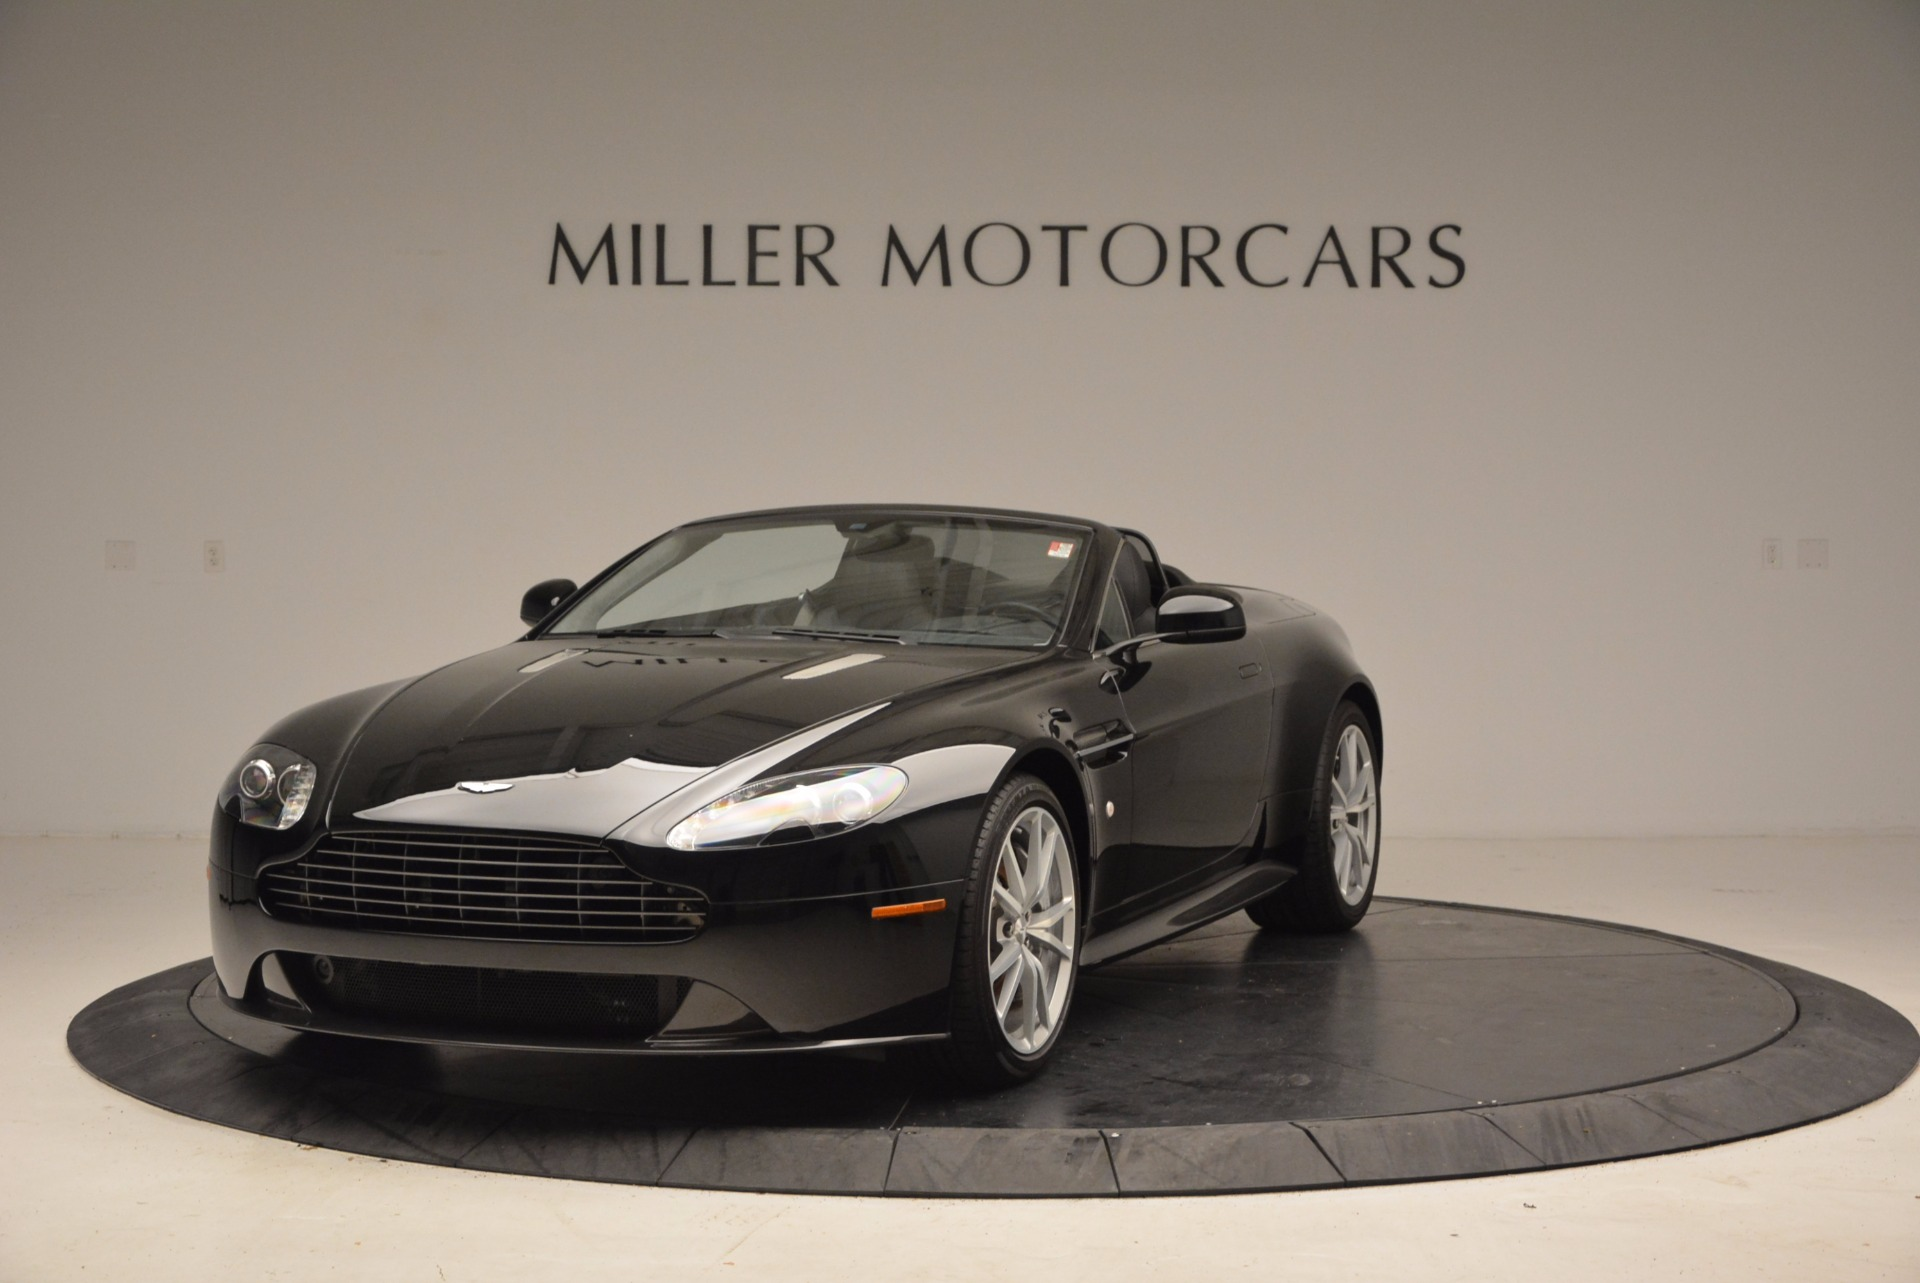 New 2016 Aston Martin V8 Vantage Roadster For Sale In Westport, CT 1546_main